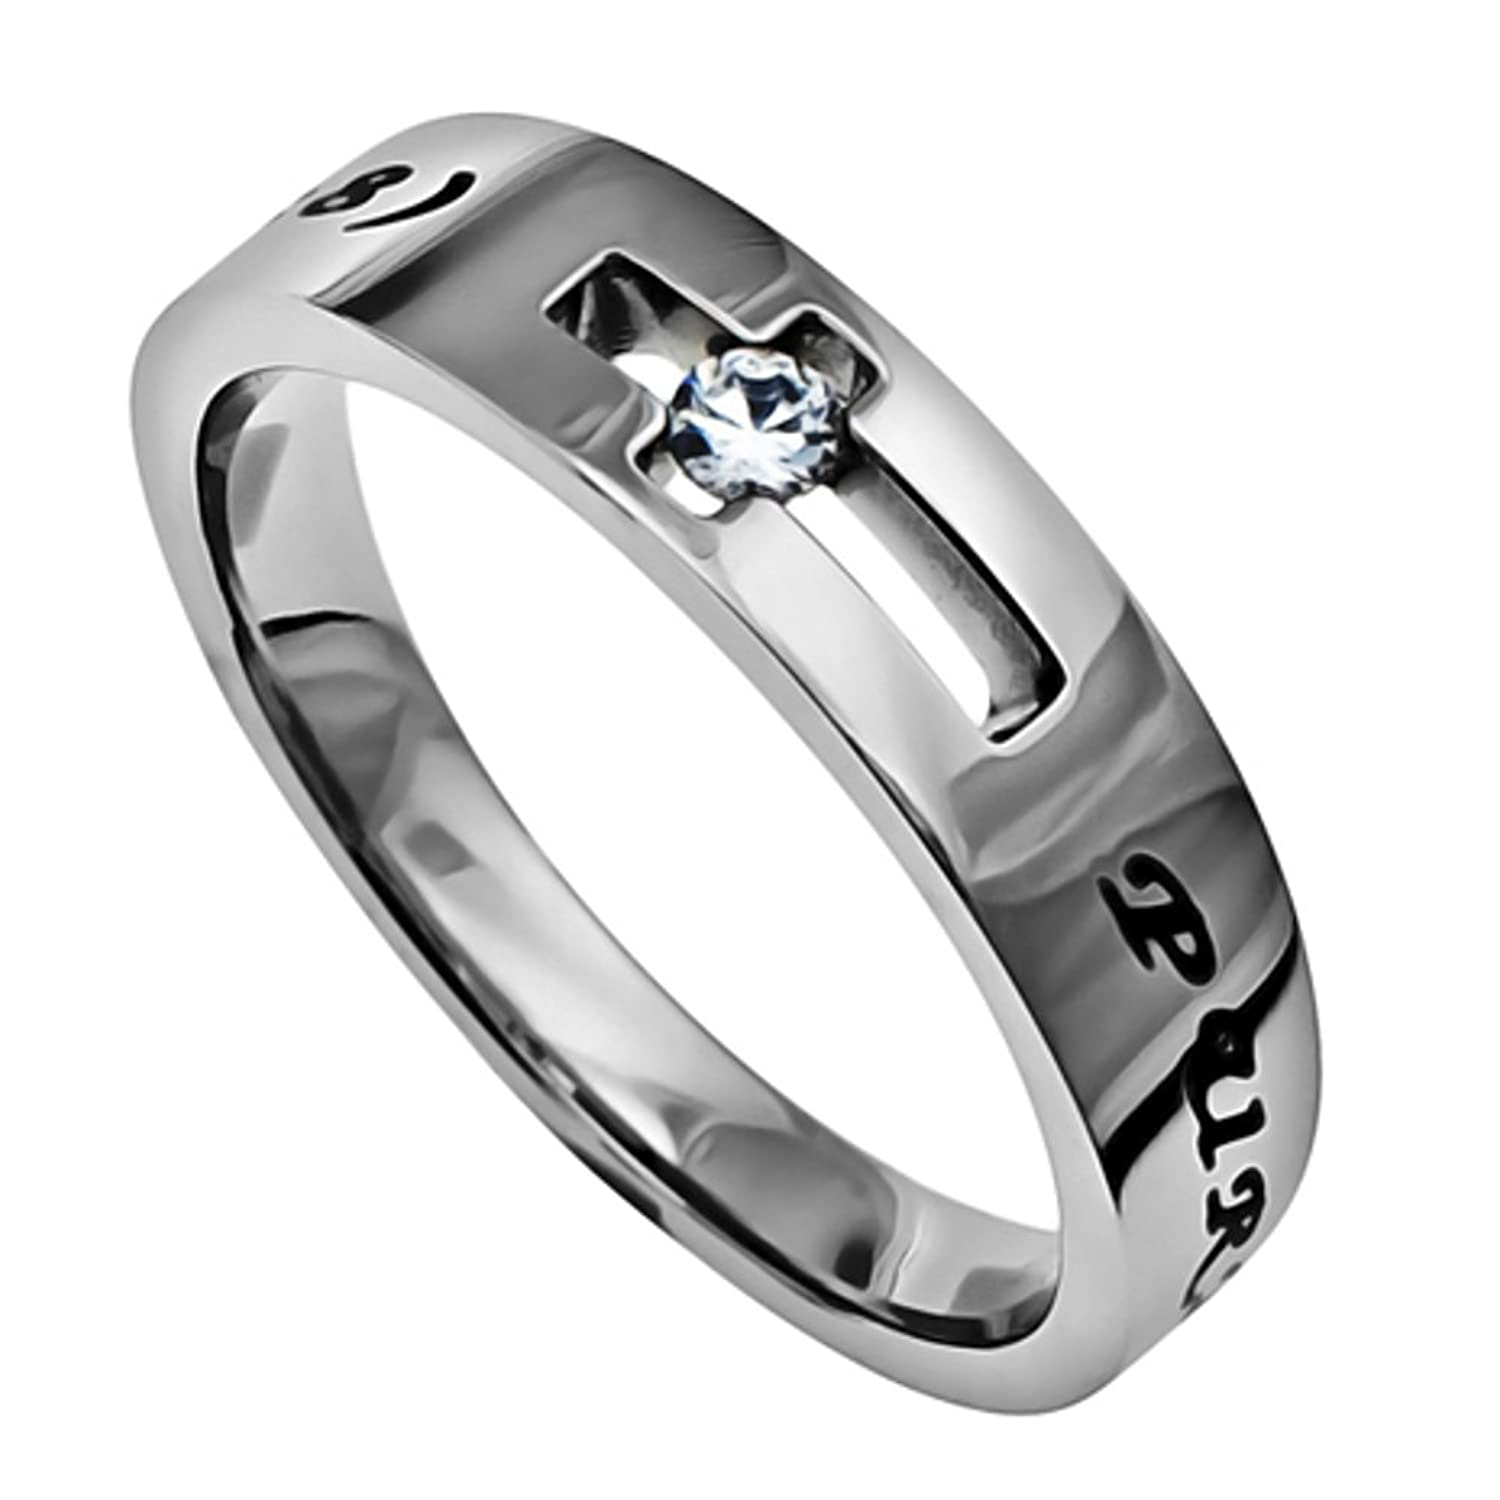 Amazon.com: Purity Ring for Girls, Stainless Steel, Jesus Faith ...